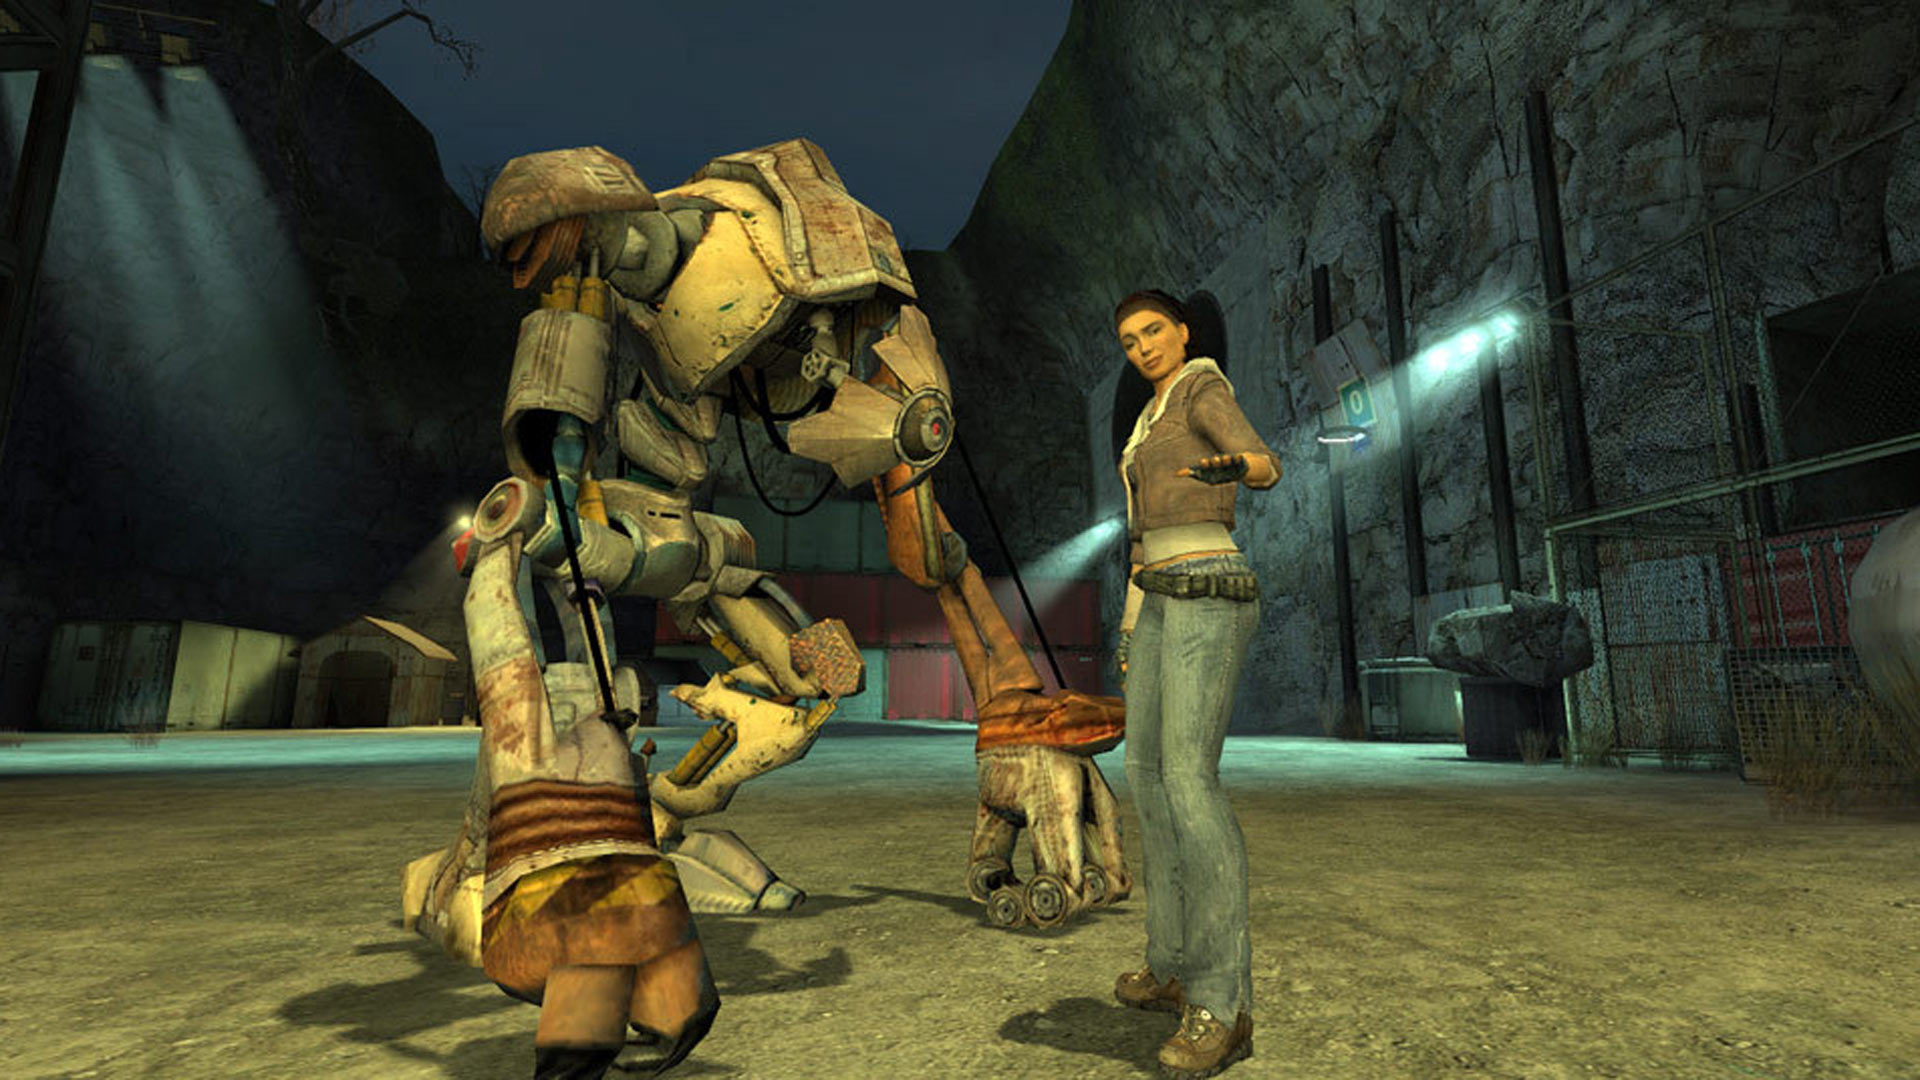 Half-Life: Alyx is a new official Half-Life game